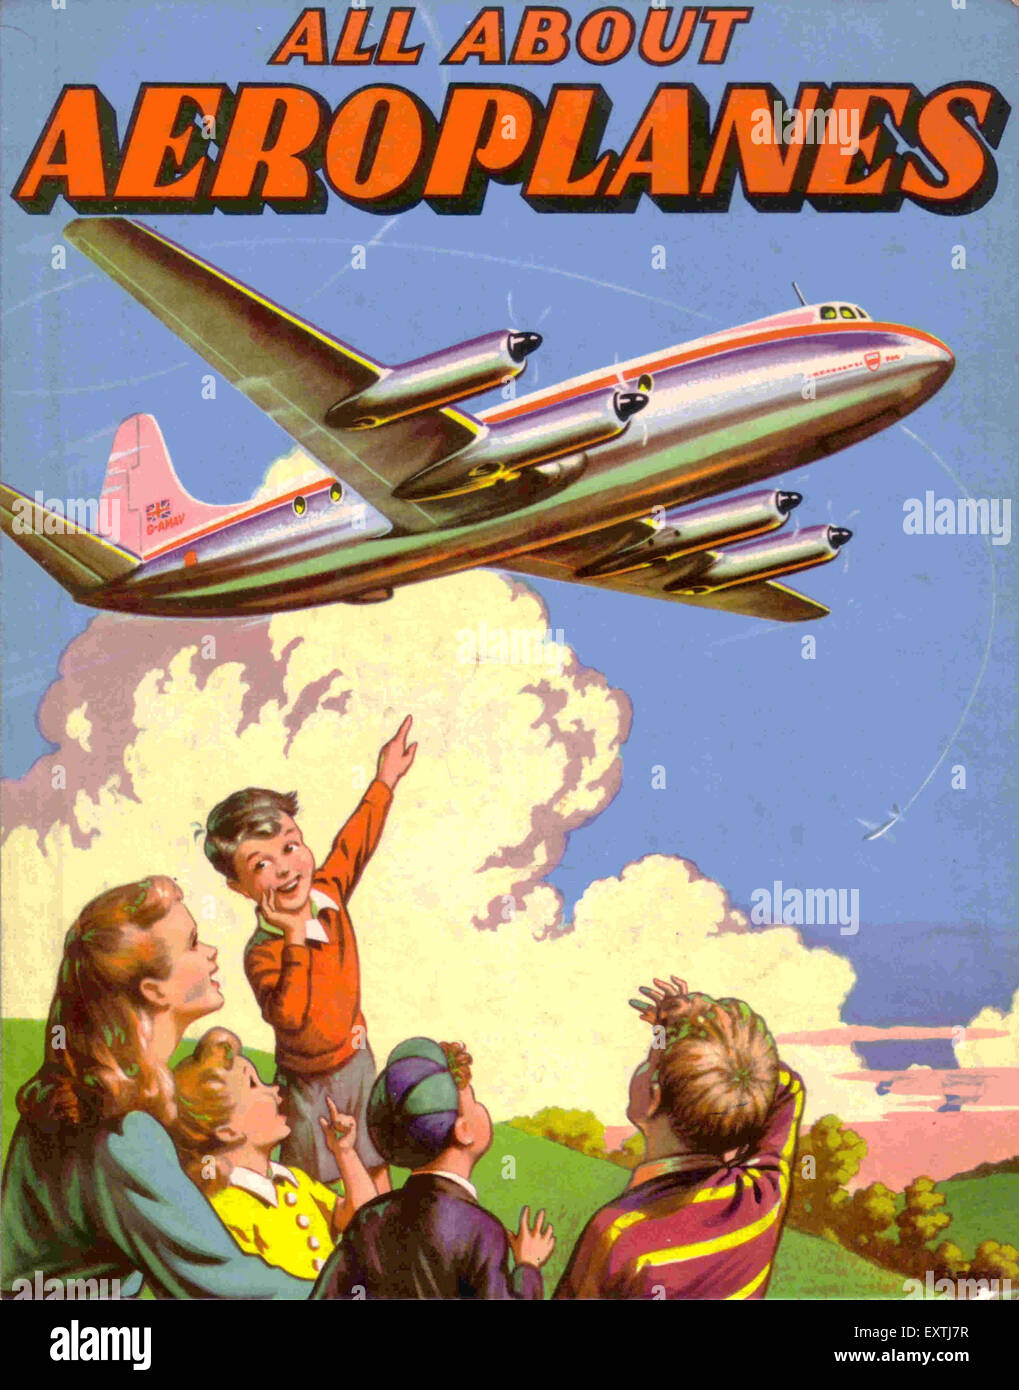 UK All About Aeroplanes Book Cover - Stock Image